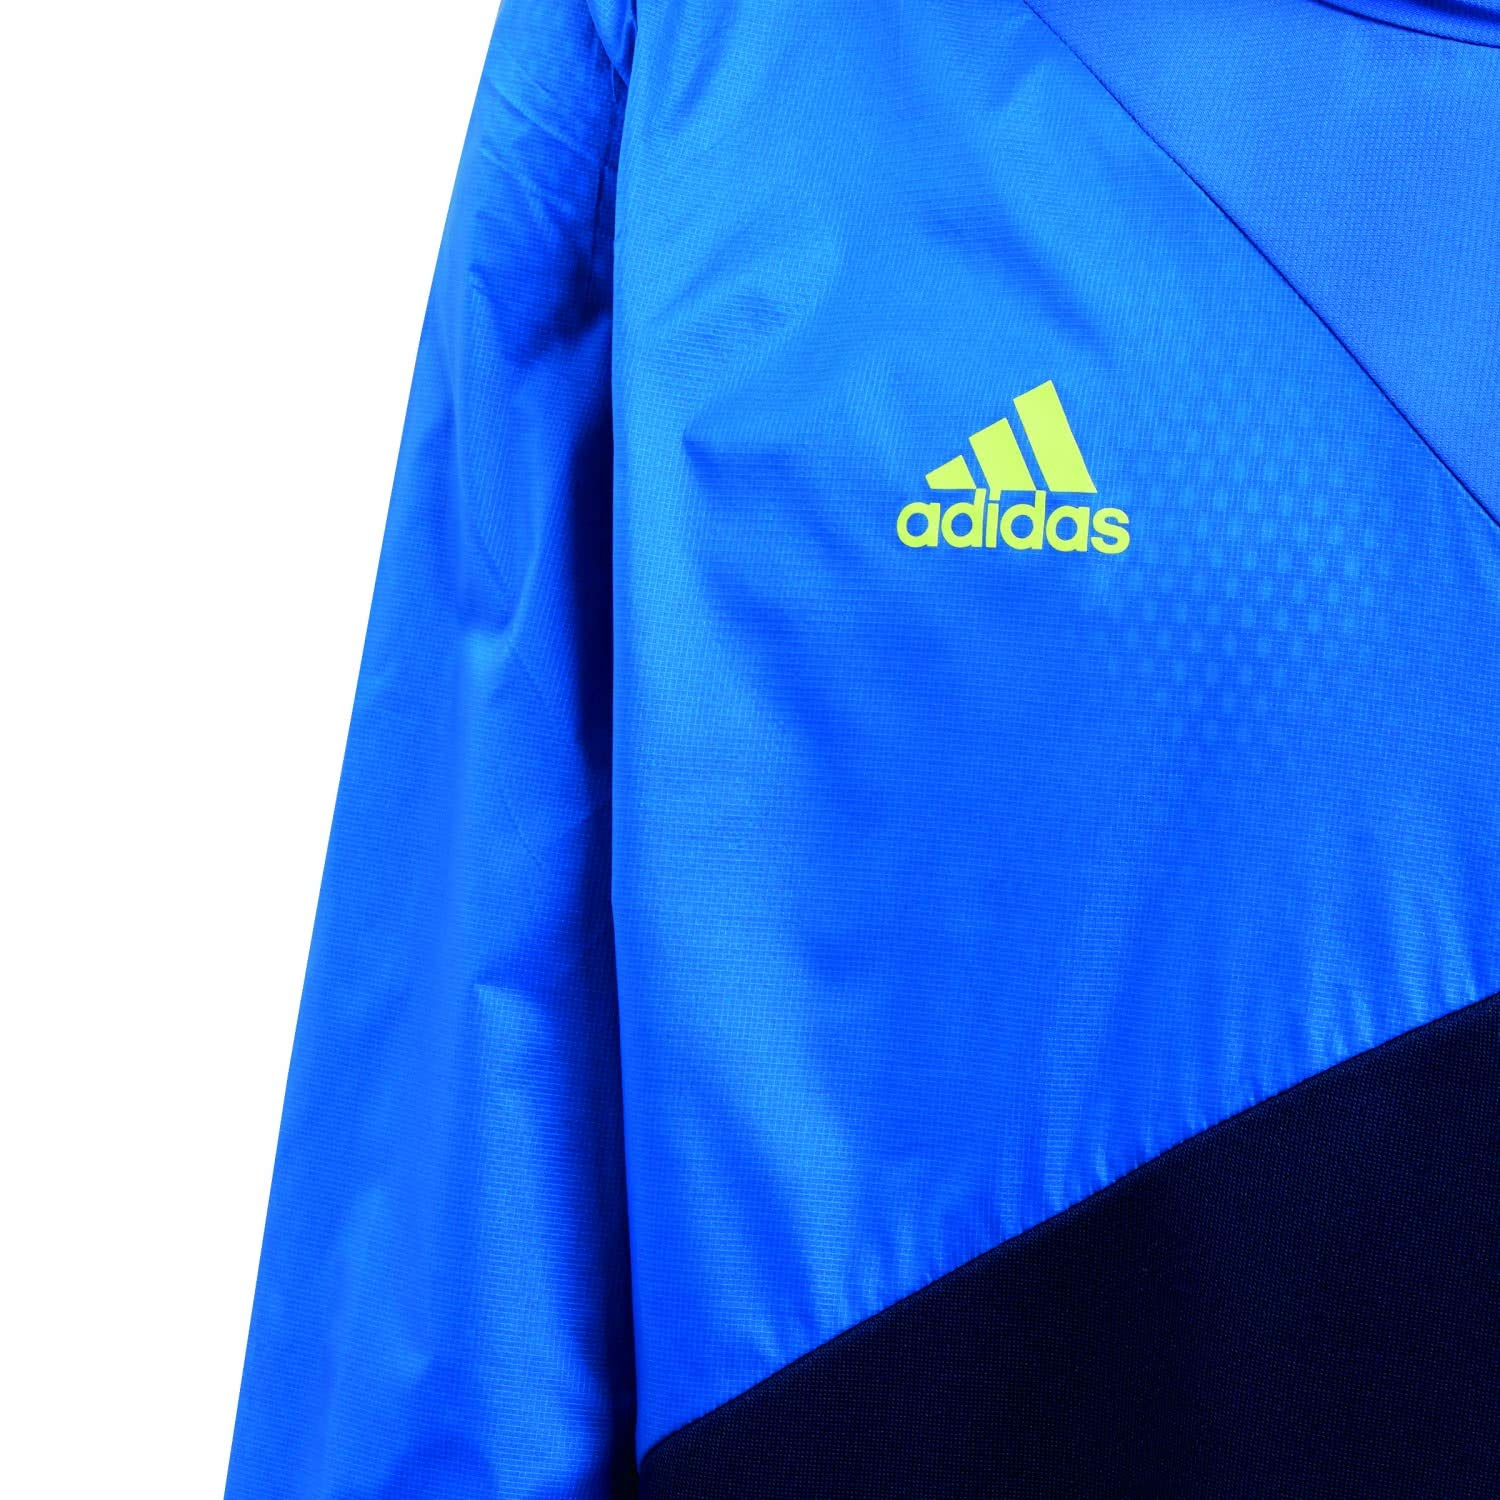 adidas Messi Half Zip Hooded Track Top 01a3f6900aac1